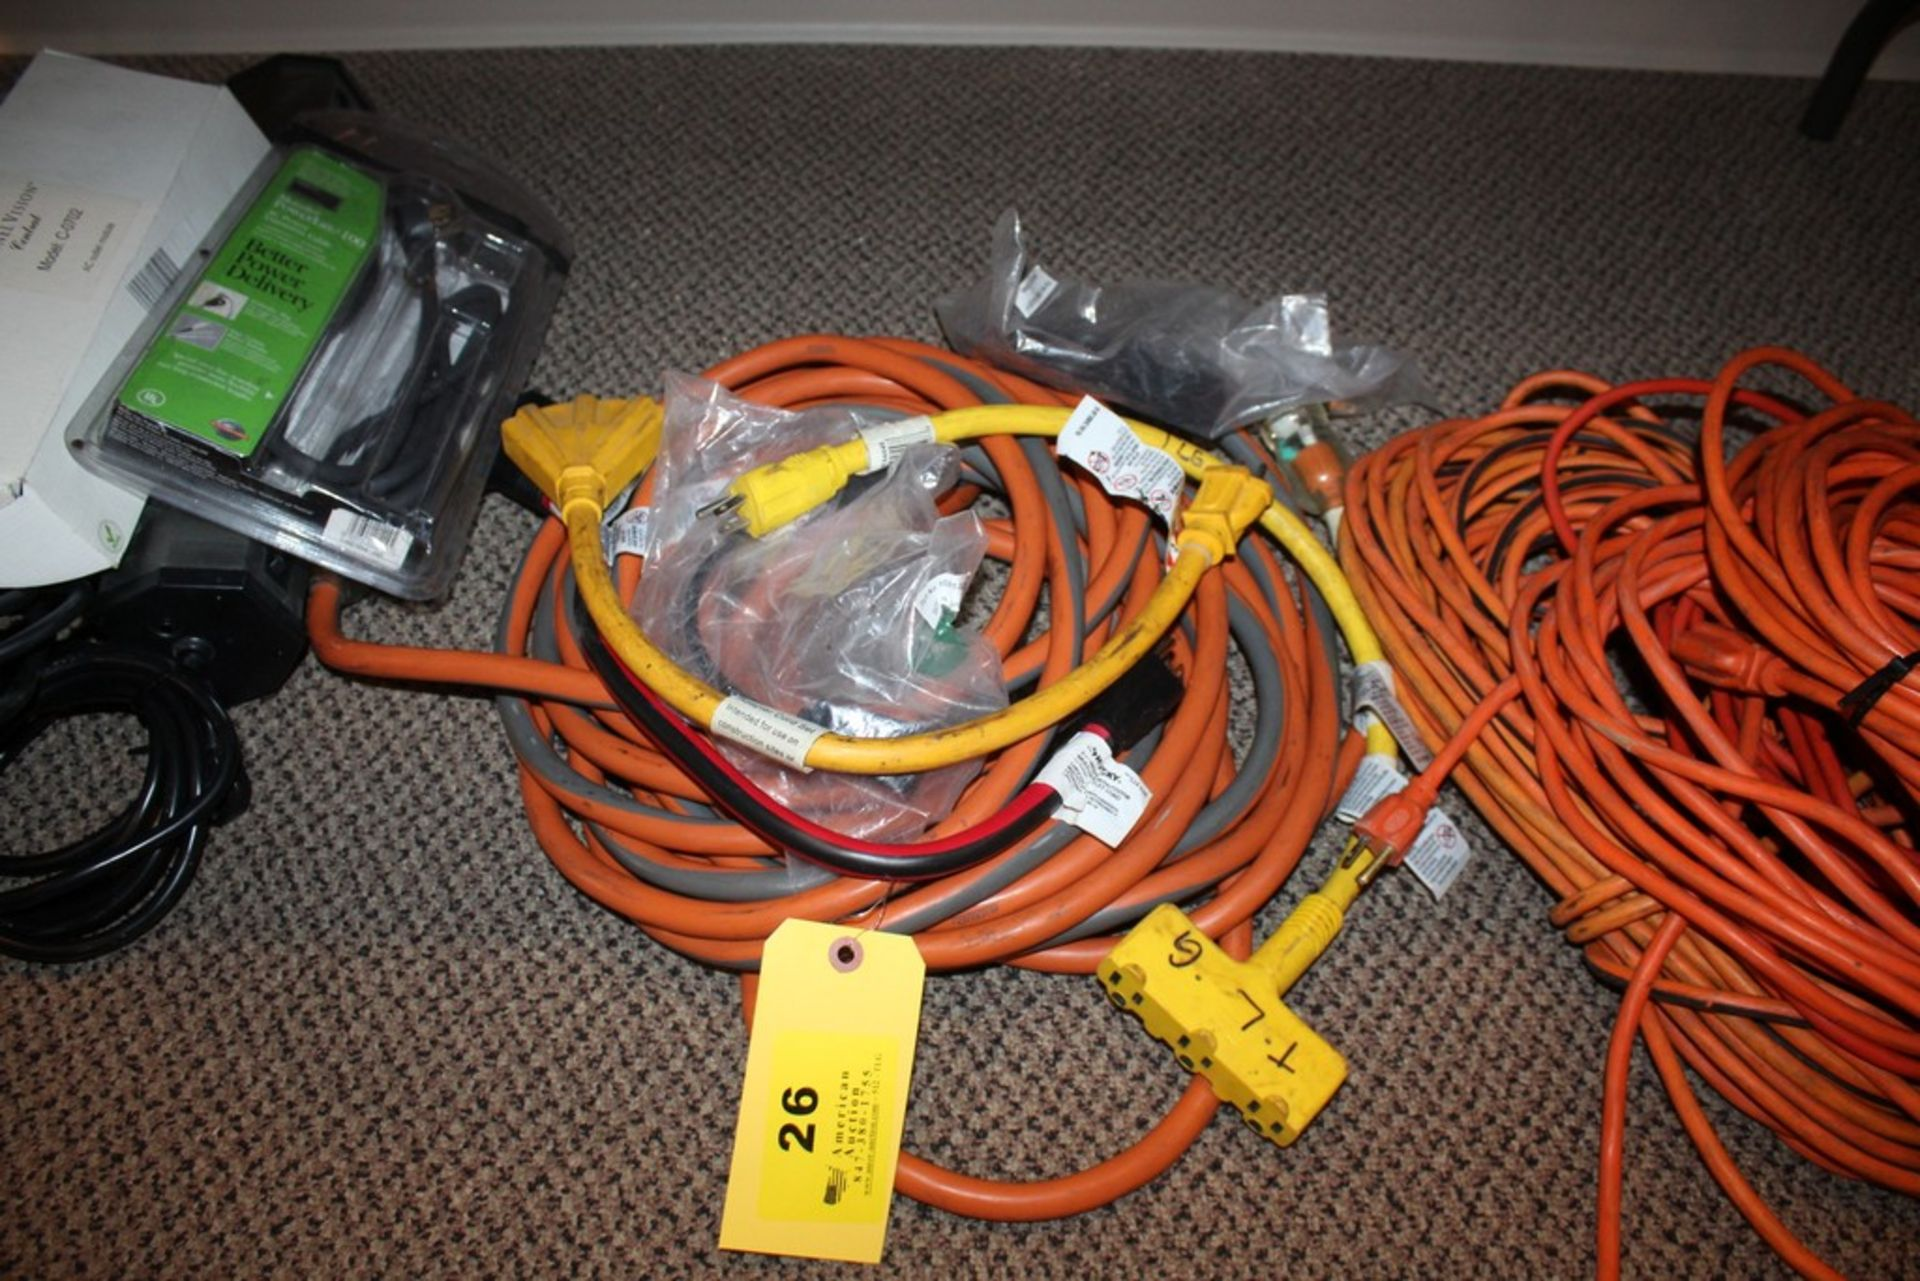 Lot 26 - HEAVY DUTY ELECTRICAL EXTENSION CORDS AND ADAPTER CORDS